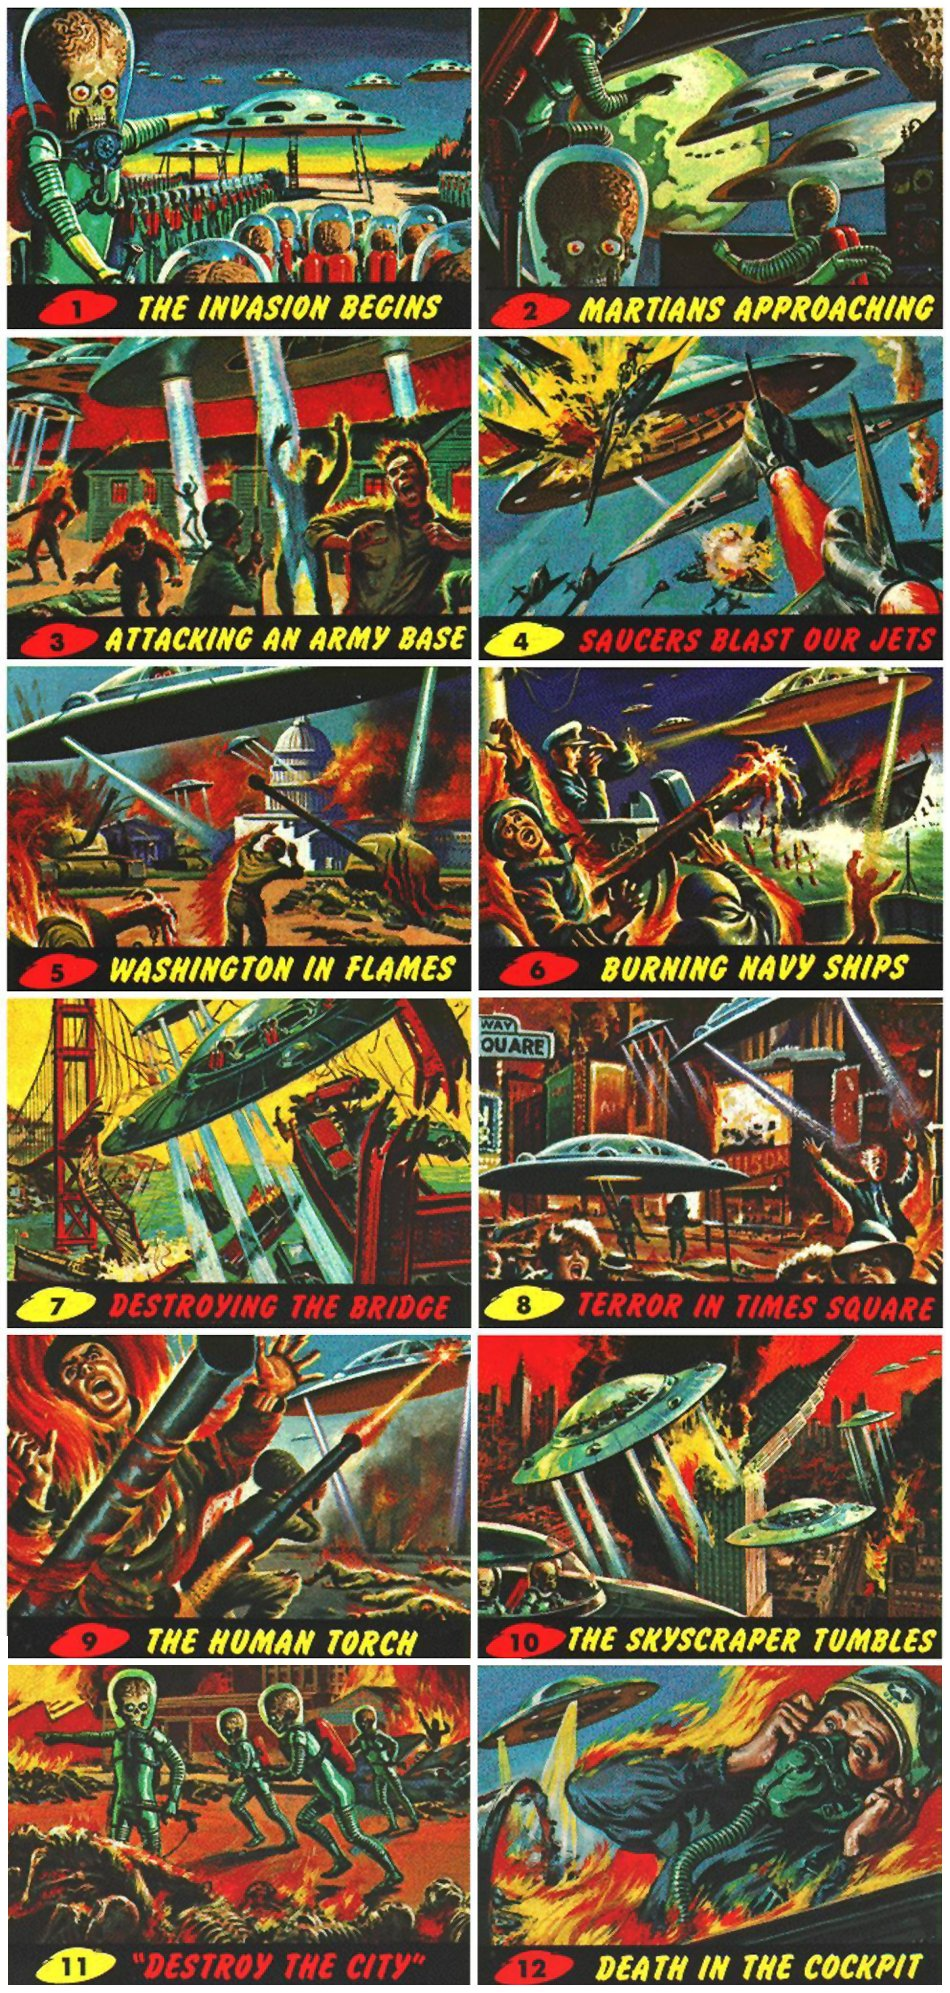 Archives - Old space magazines Topps1